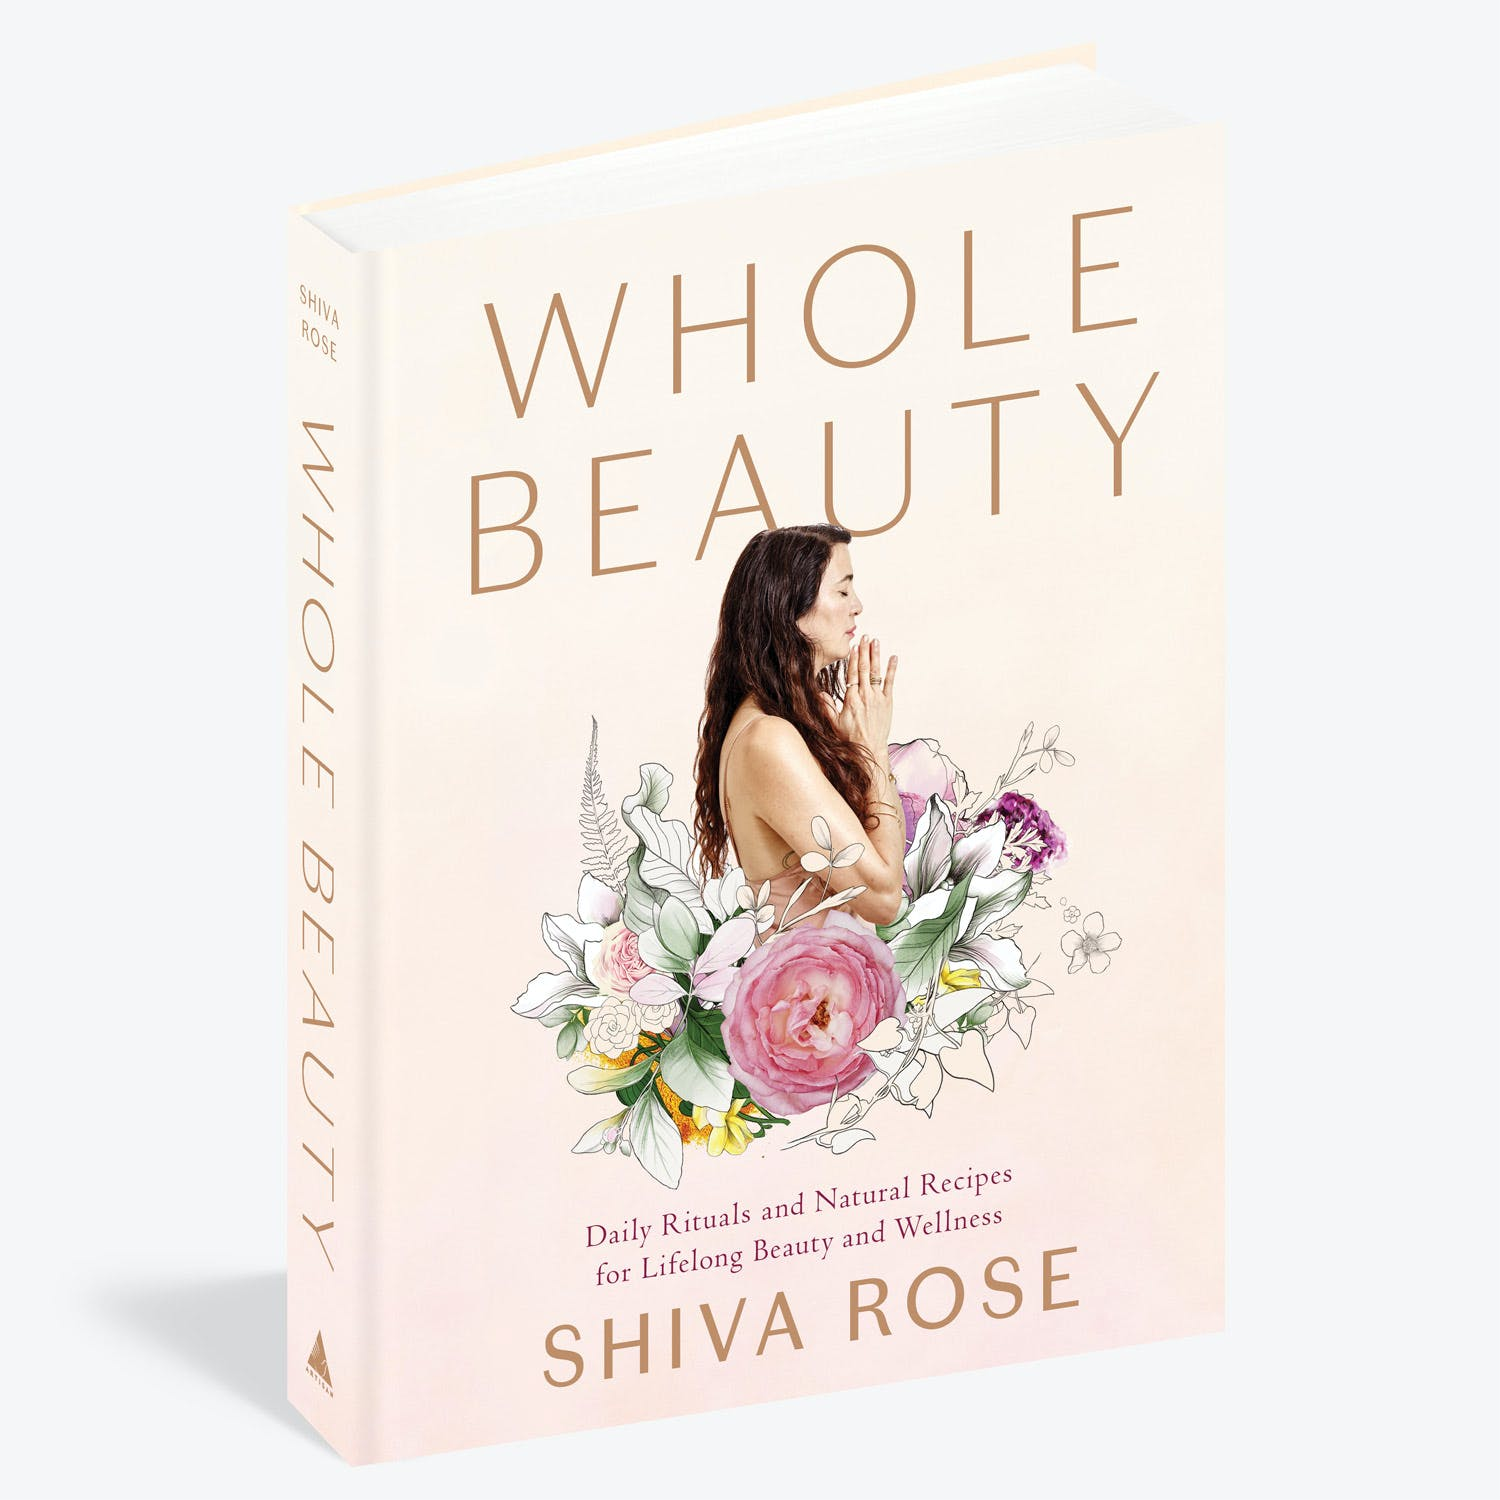 Product Image - Whole Beauty: Daily Rituals and Natural Recipes for Lifelong Beauty and Wellness by Shiva Rose